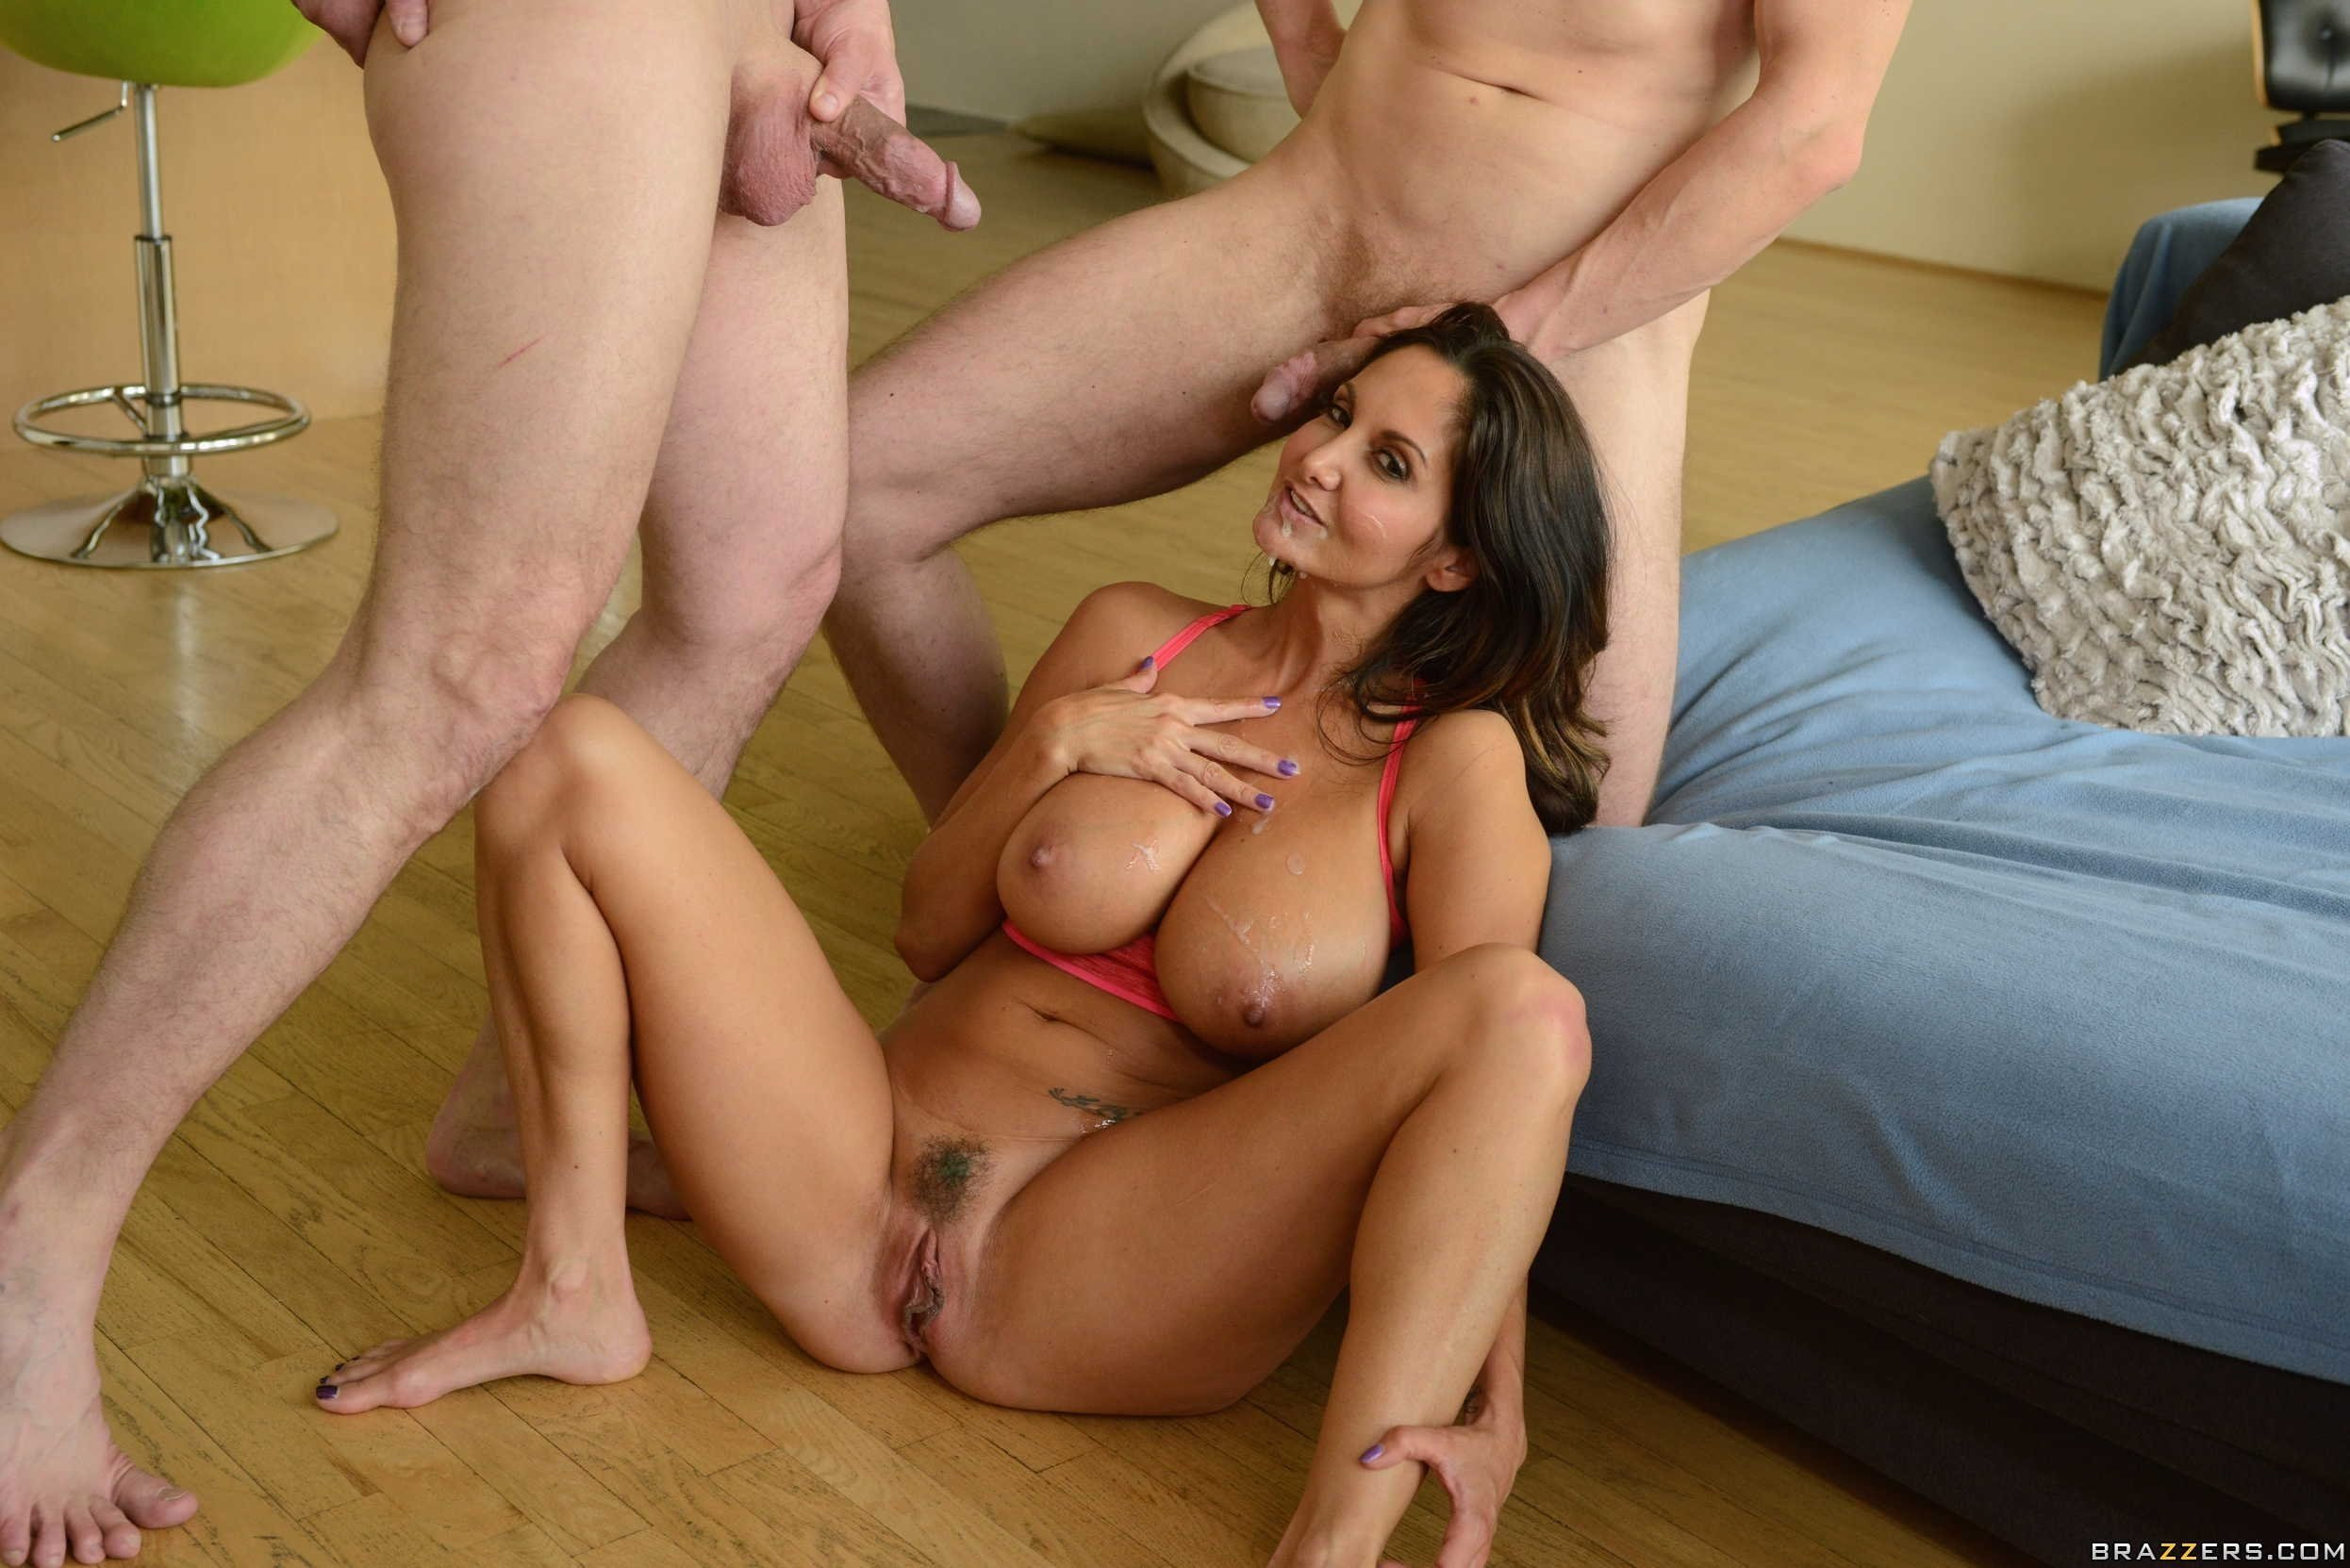 Hot Sexy Moms Getting Fucked